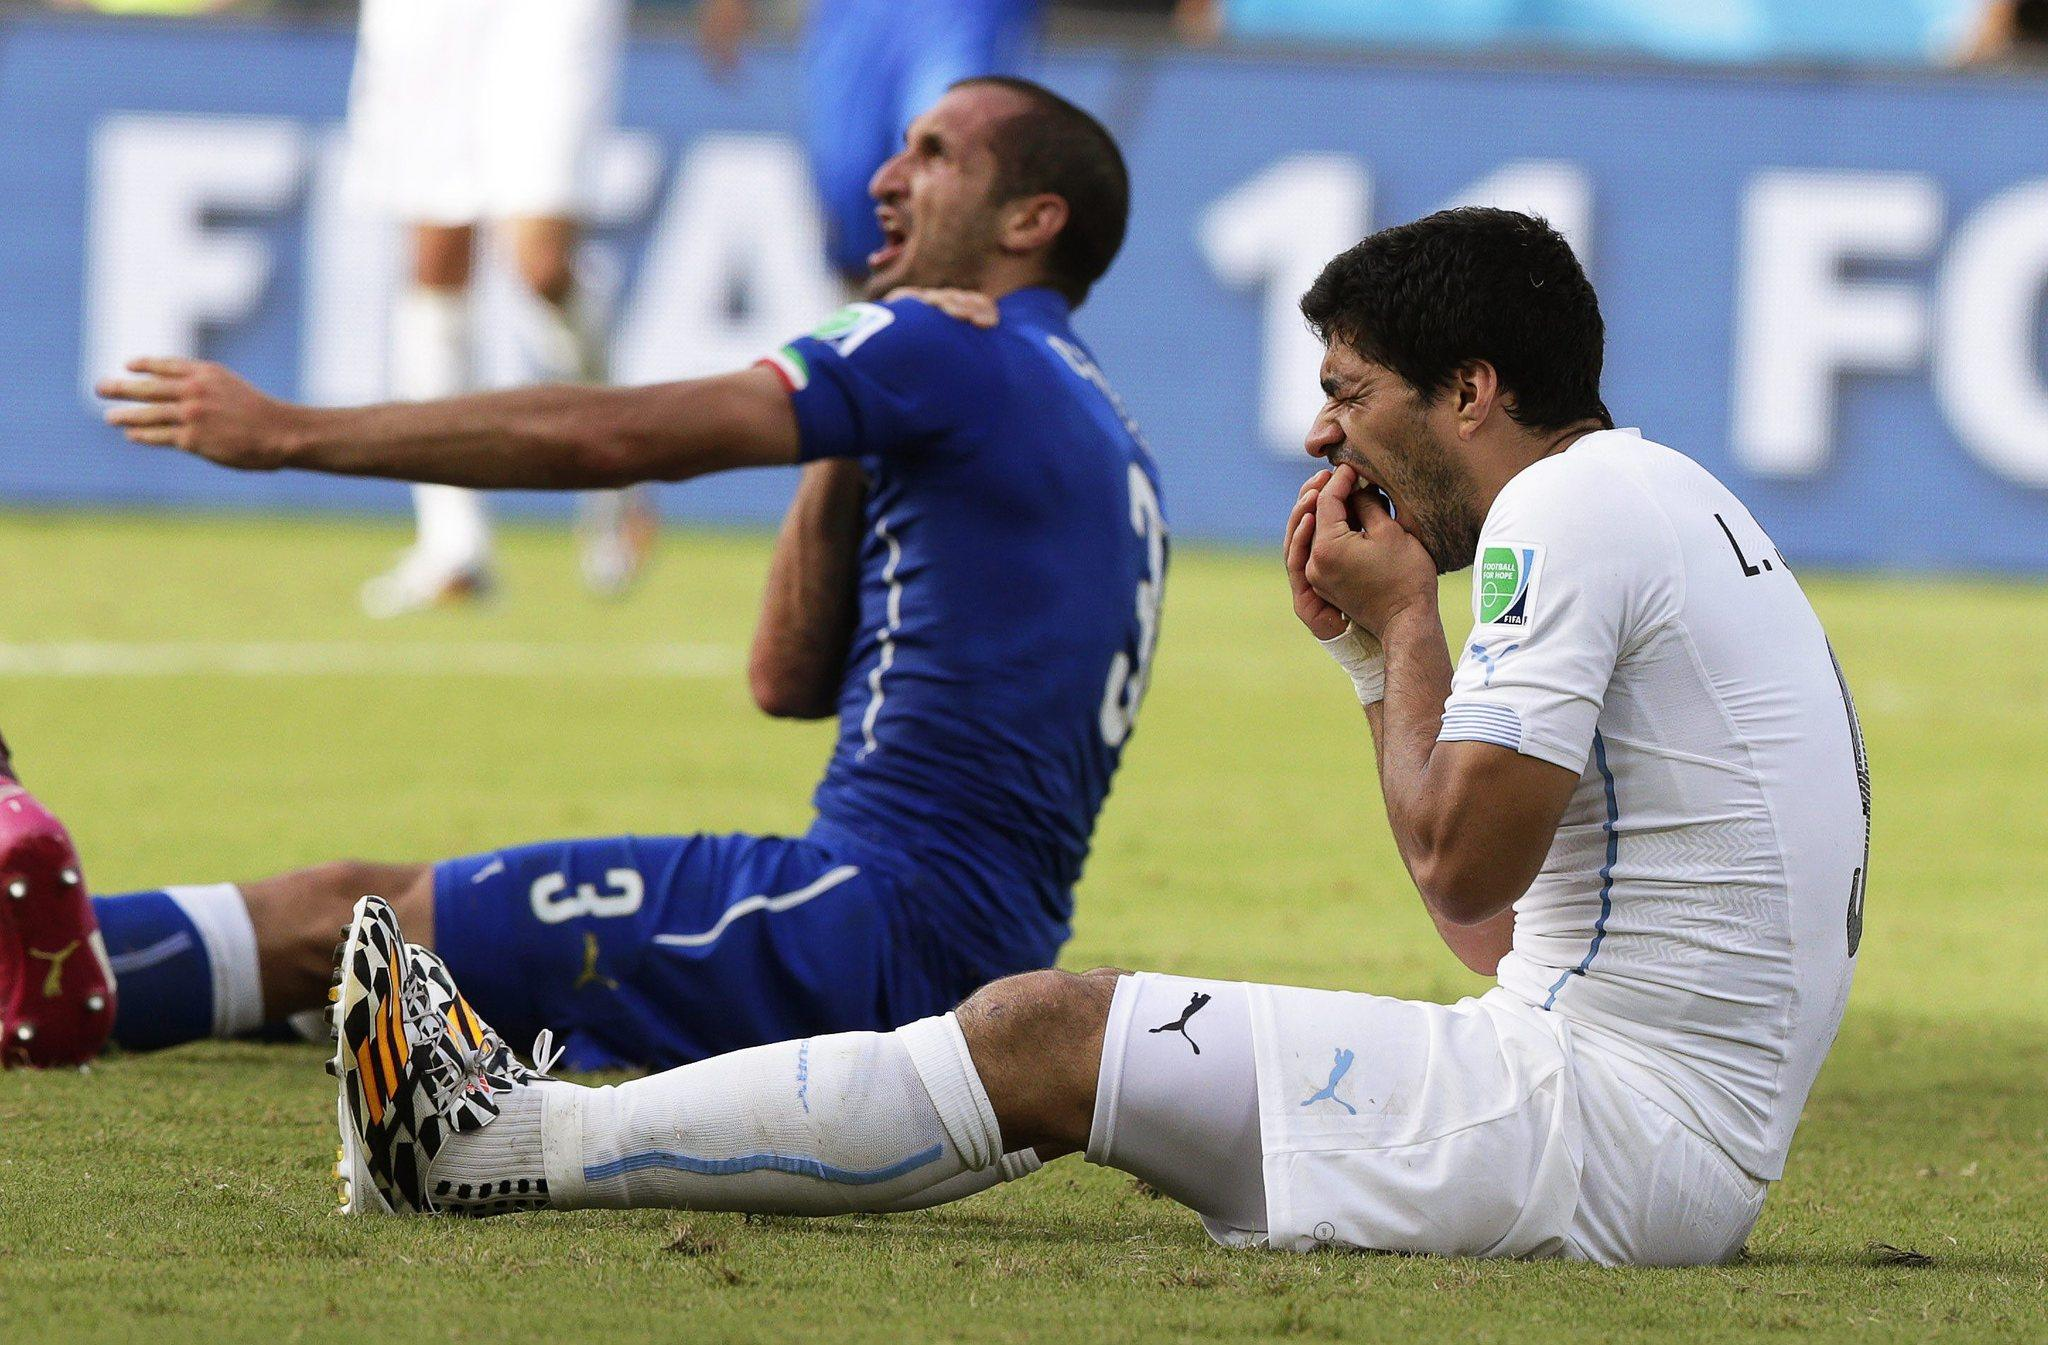 Italy's Giorgio Chiellini (left) claims he was bitten by Uruguay's Luis Suarez during the FIFA World Cup 2014 Group D preliminary round match between Italy and Uruguay at the Estadio Arena das Dunas in Natal, Brazil.